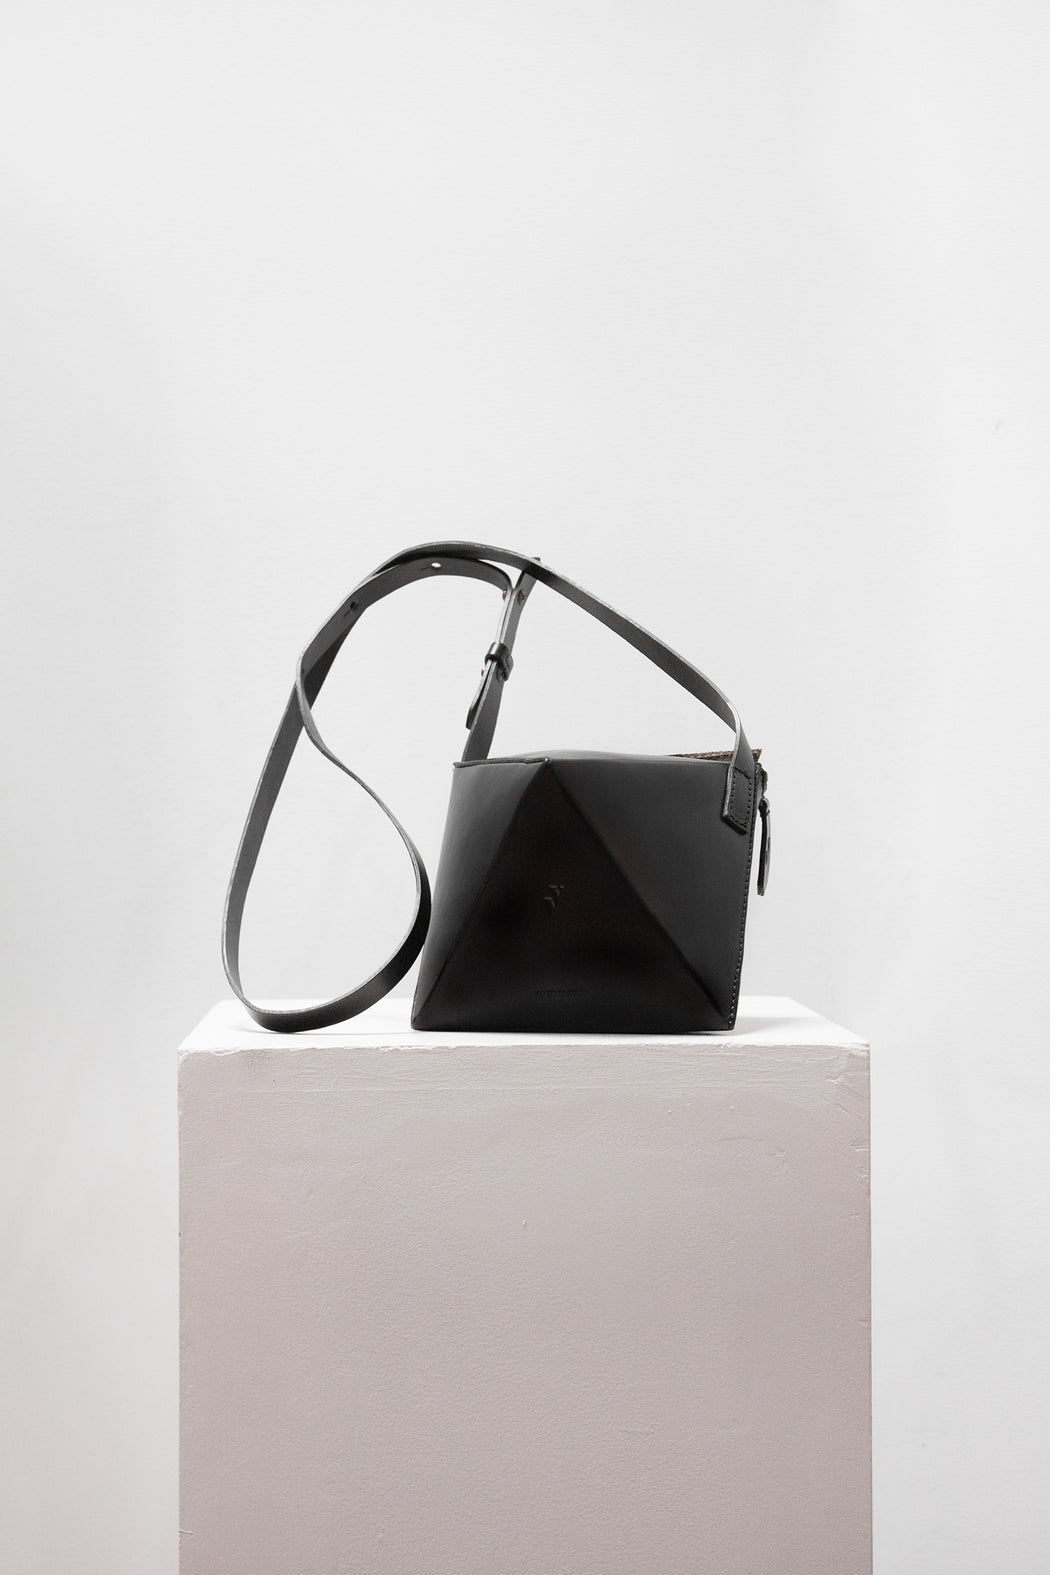 Vere Verto Leather Goods | Octa // Black | Hazel & Rose